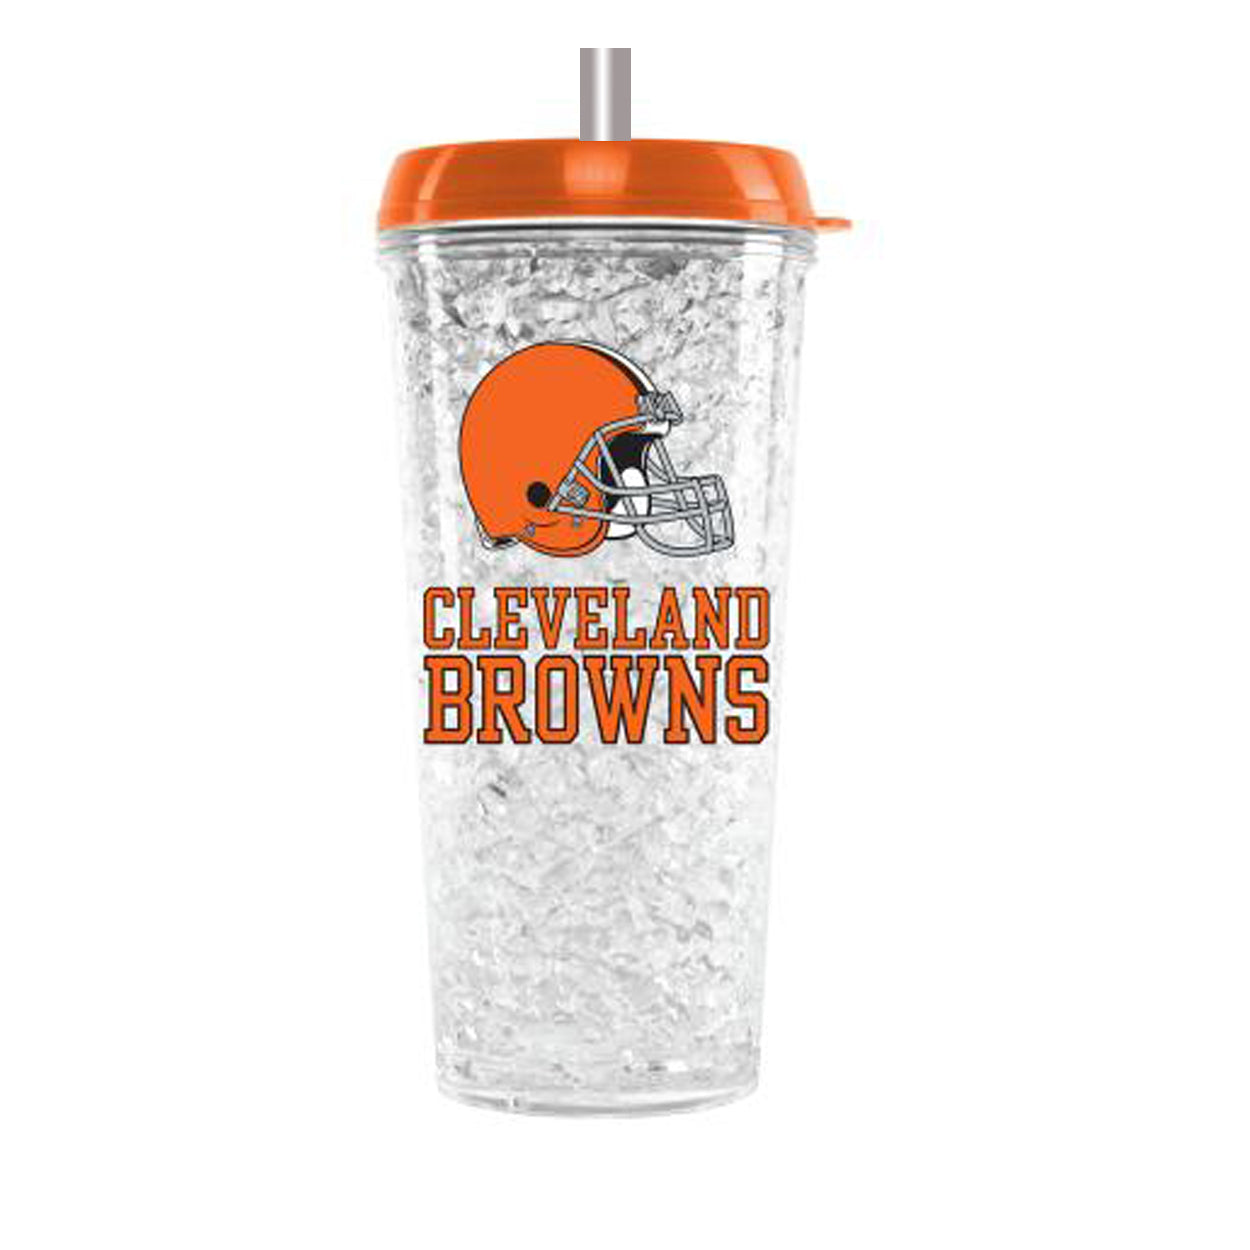 Duckhouse NFL Cleveland Browns Crystal Freezer Straw Tumbler With Lid - Sports Butler